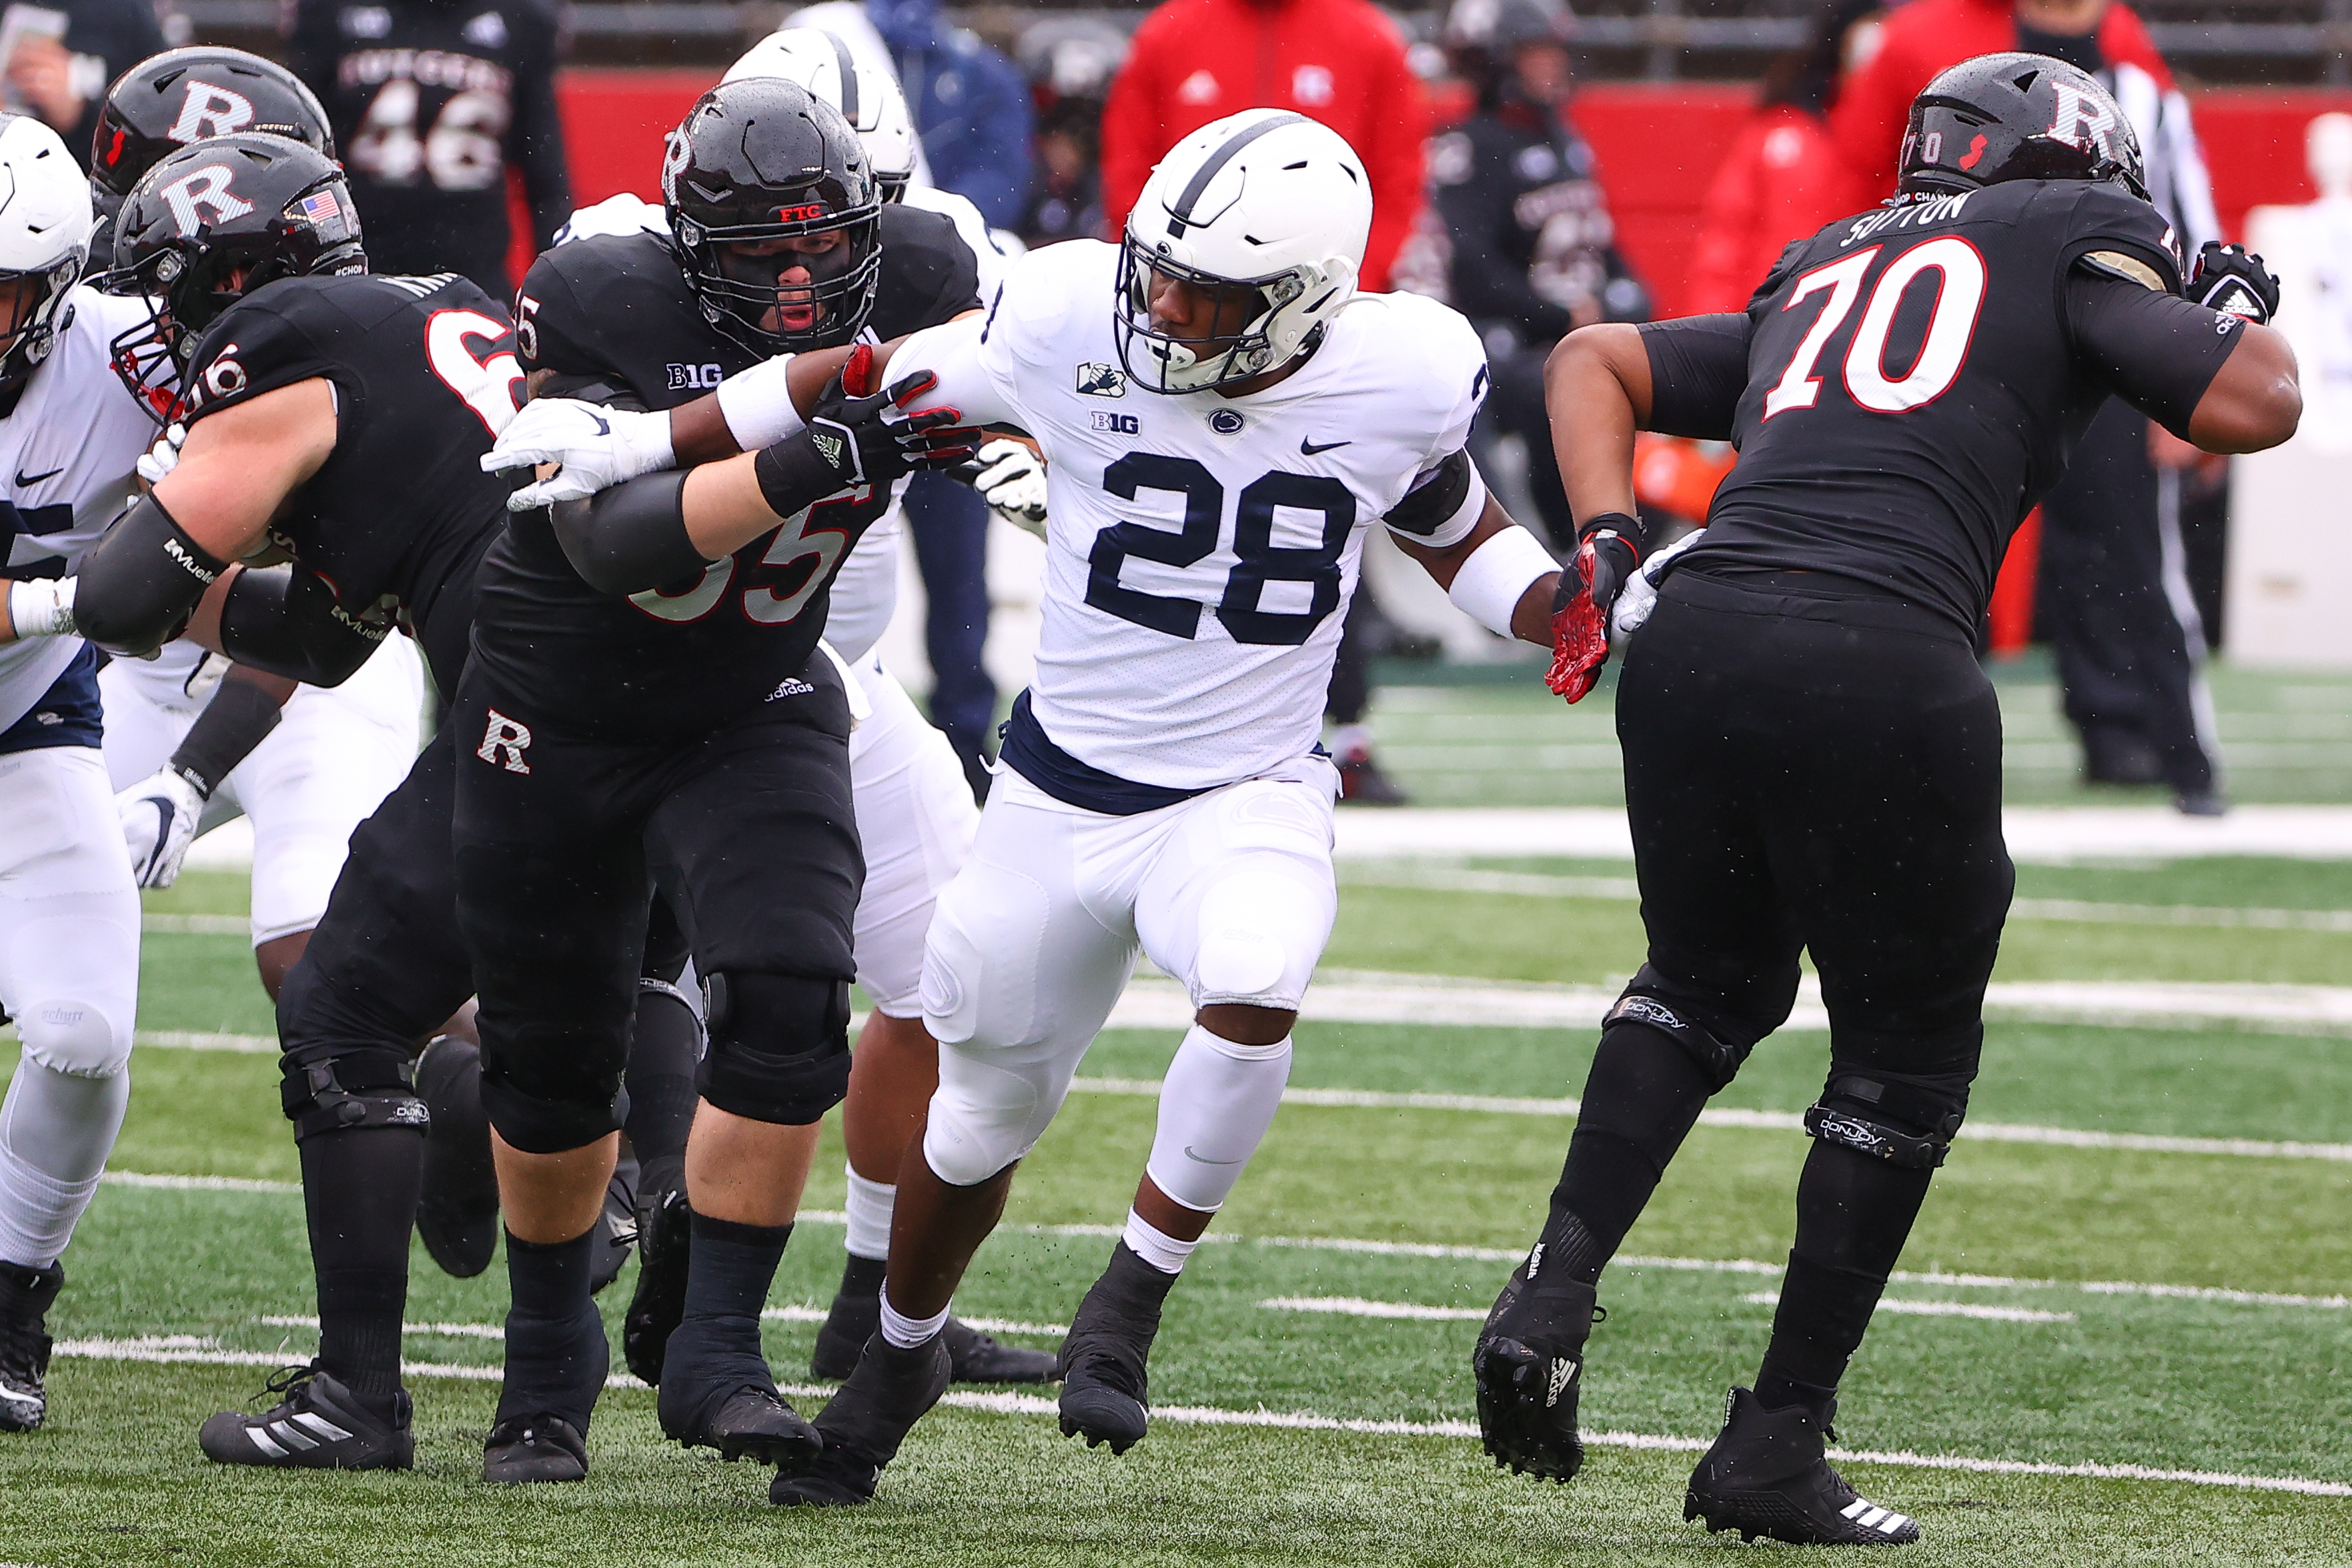 COLLEGE FOOTBALL: DEC 05 Penn State at Rutgers